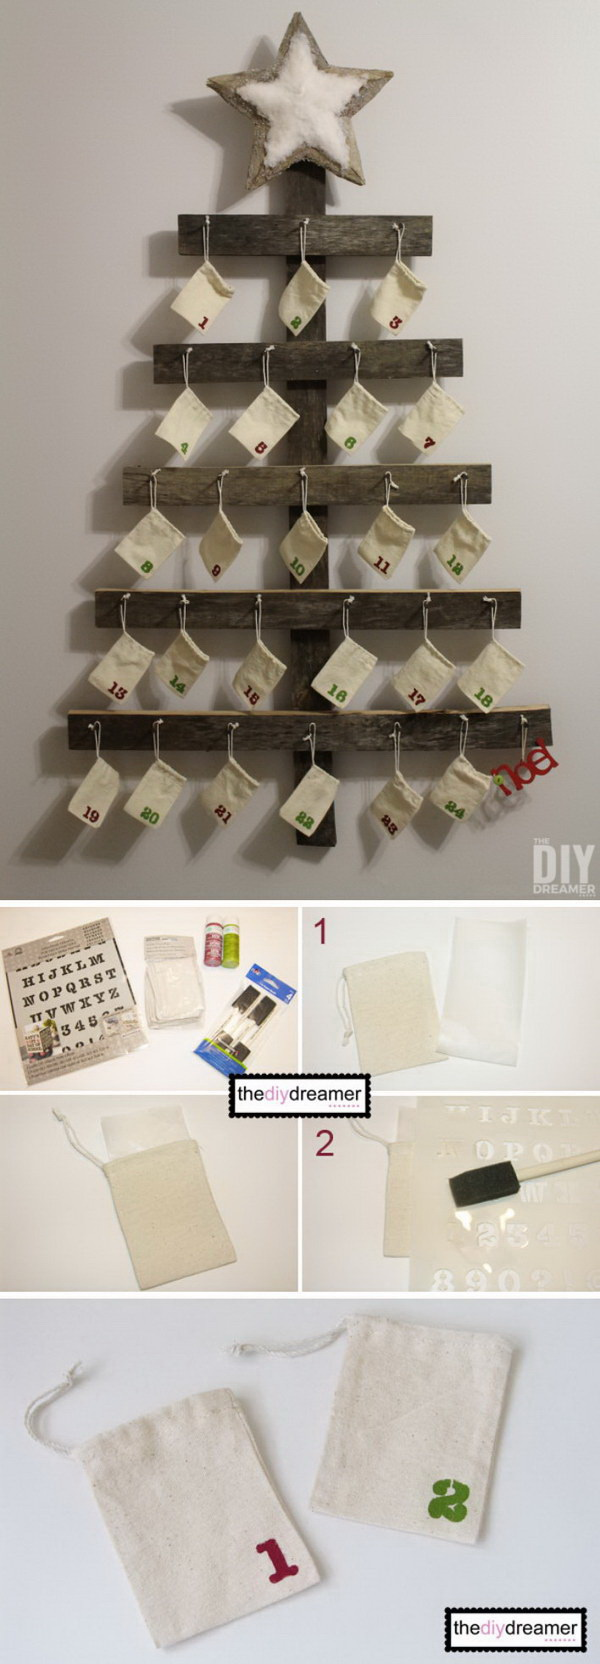 Wall Mounted Advent Calendar. It is fun and simple to build this wall mounted advent calendar for your family. It is perfect for the rustic Christmas decoration!